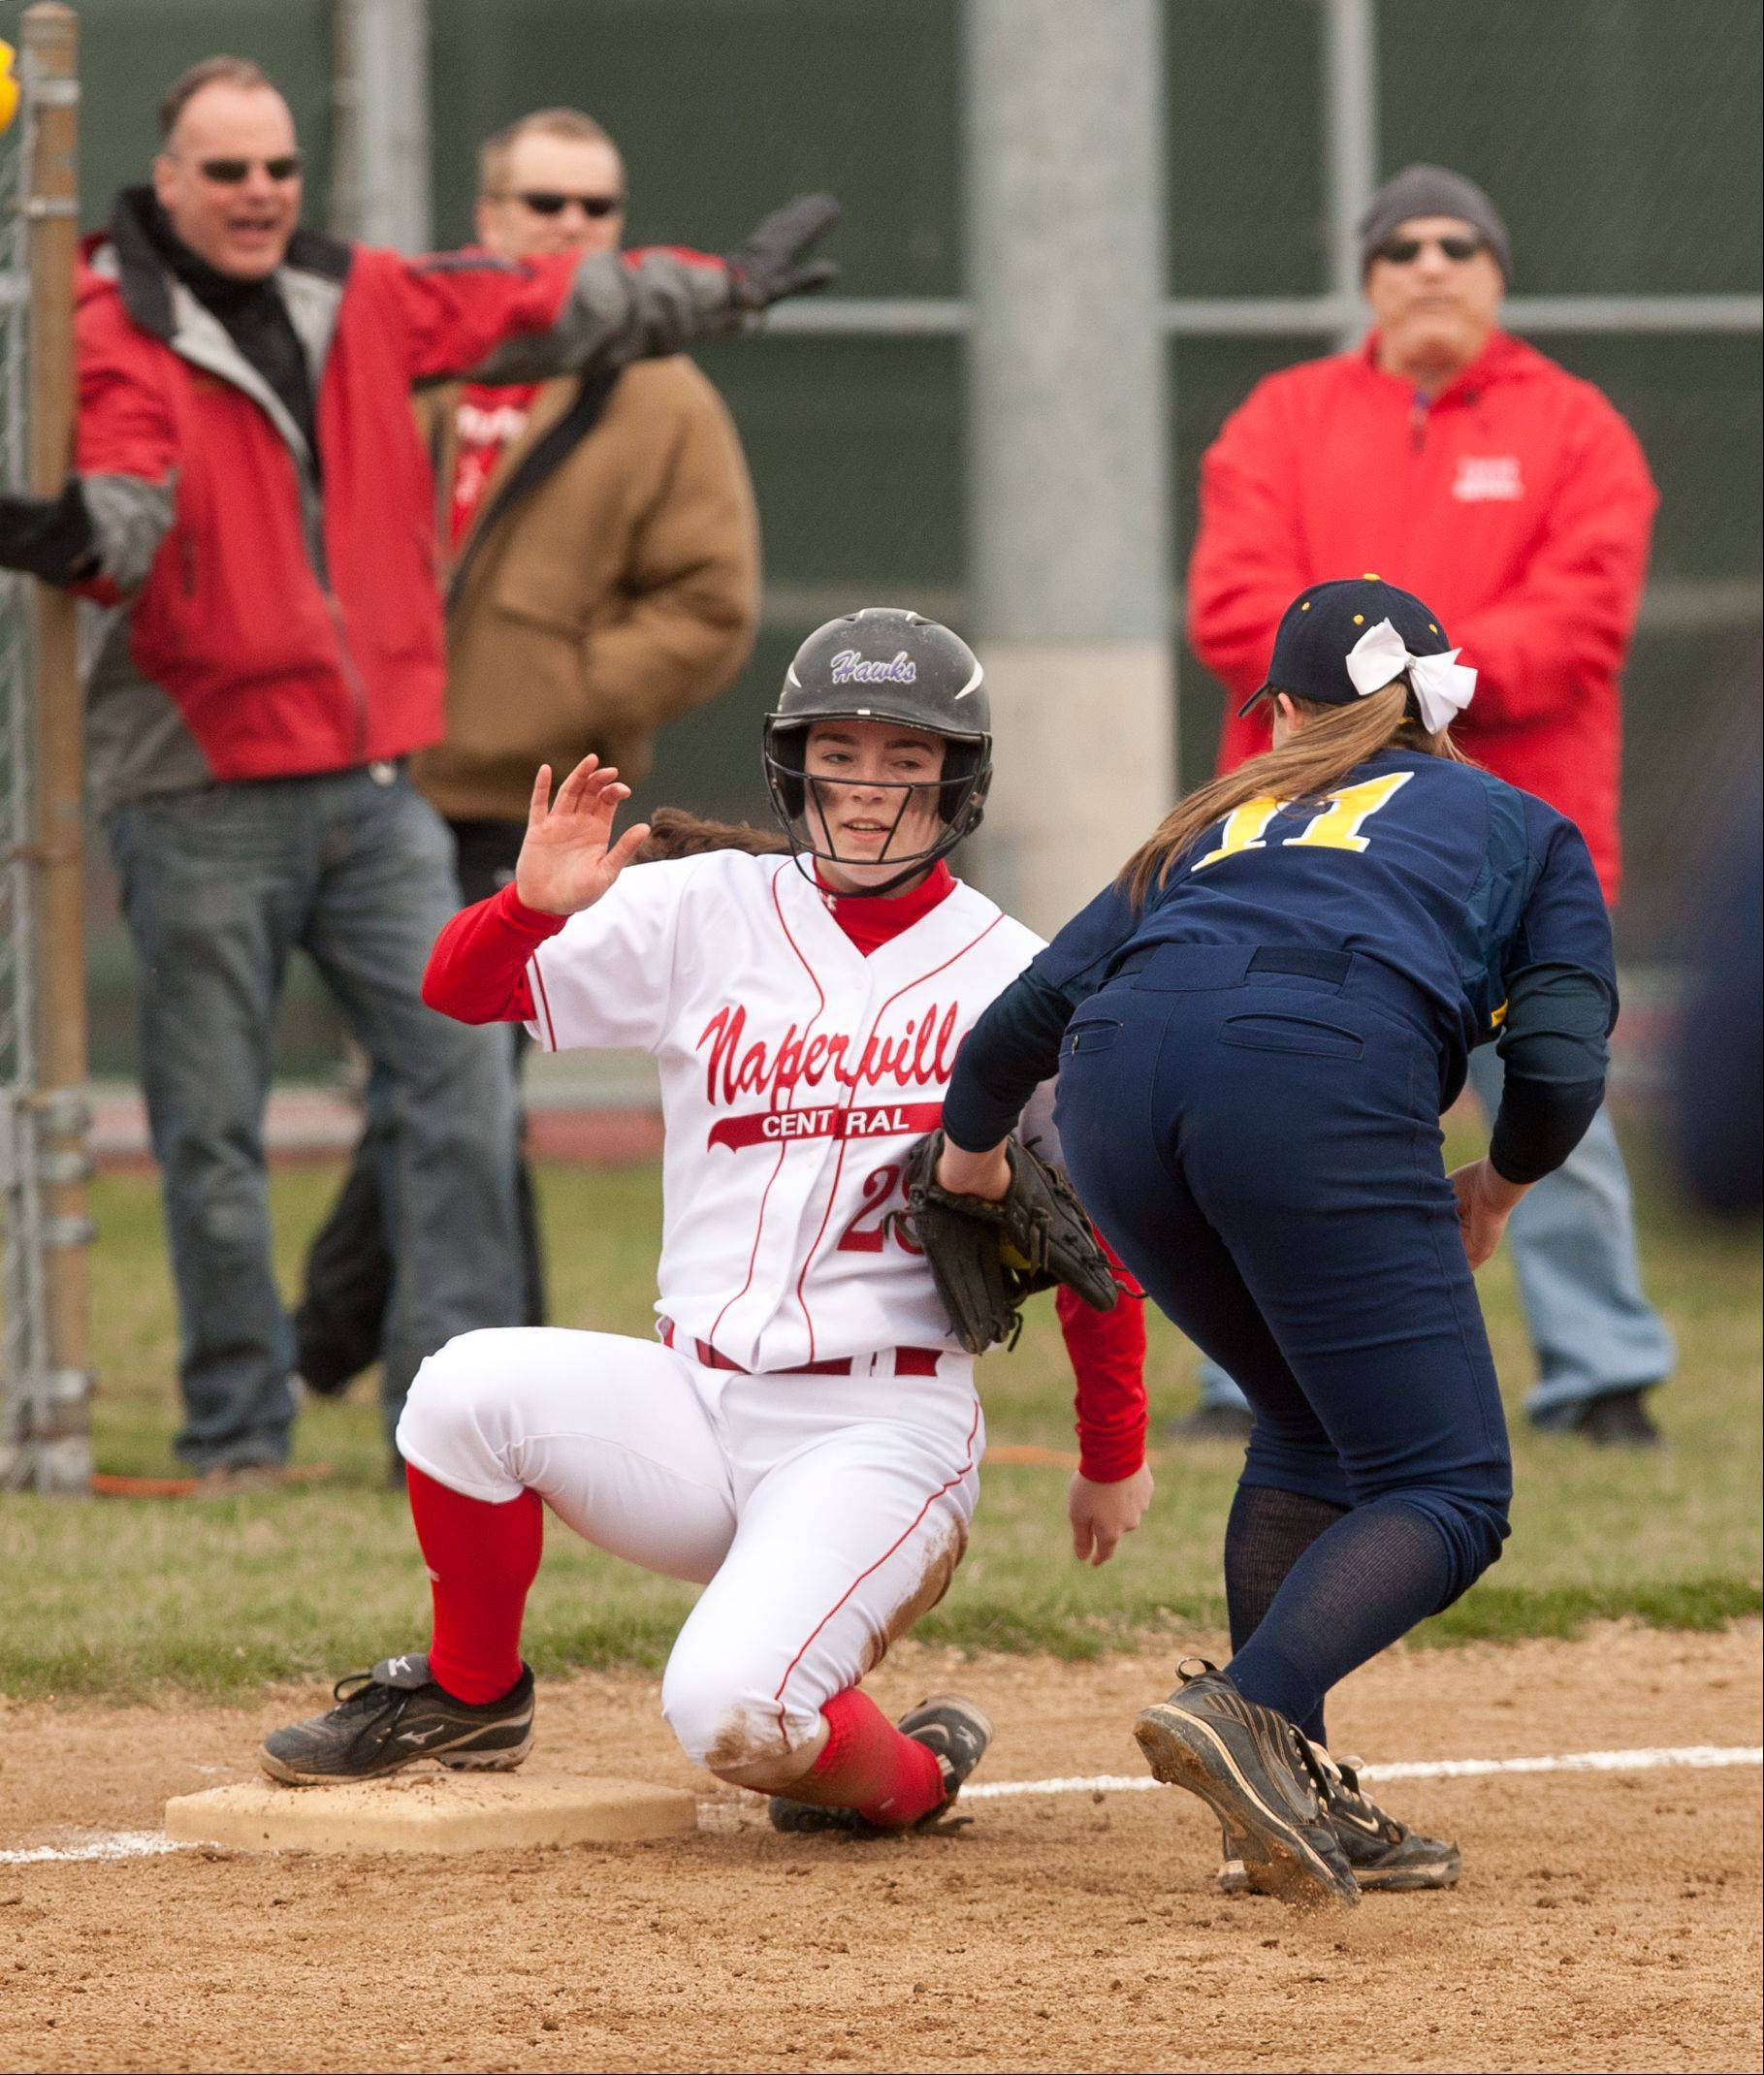 Naperville Central's Lisa Tassi slides safely into third base under the tag of Neuqua Valley's Alyssa Mazurek on Saturday at Naperville Central.